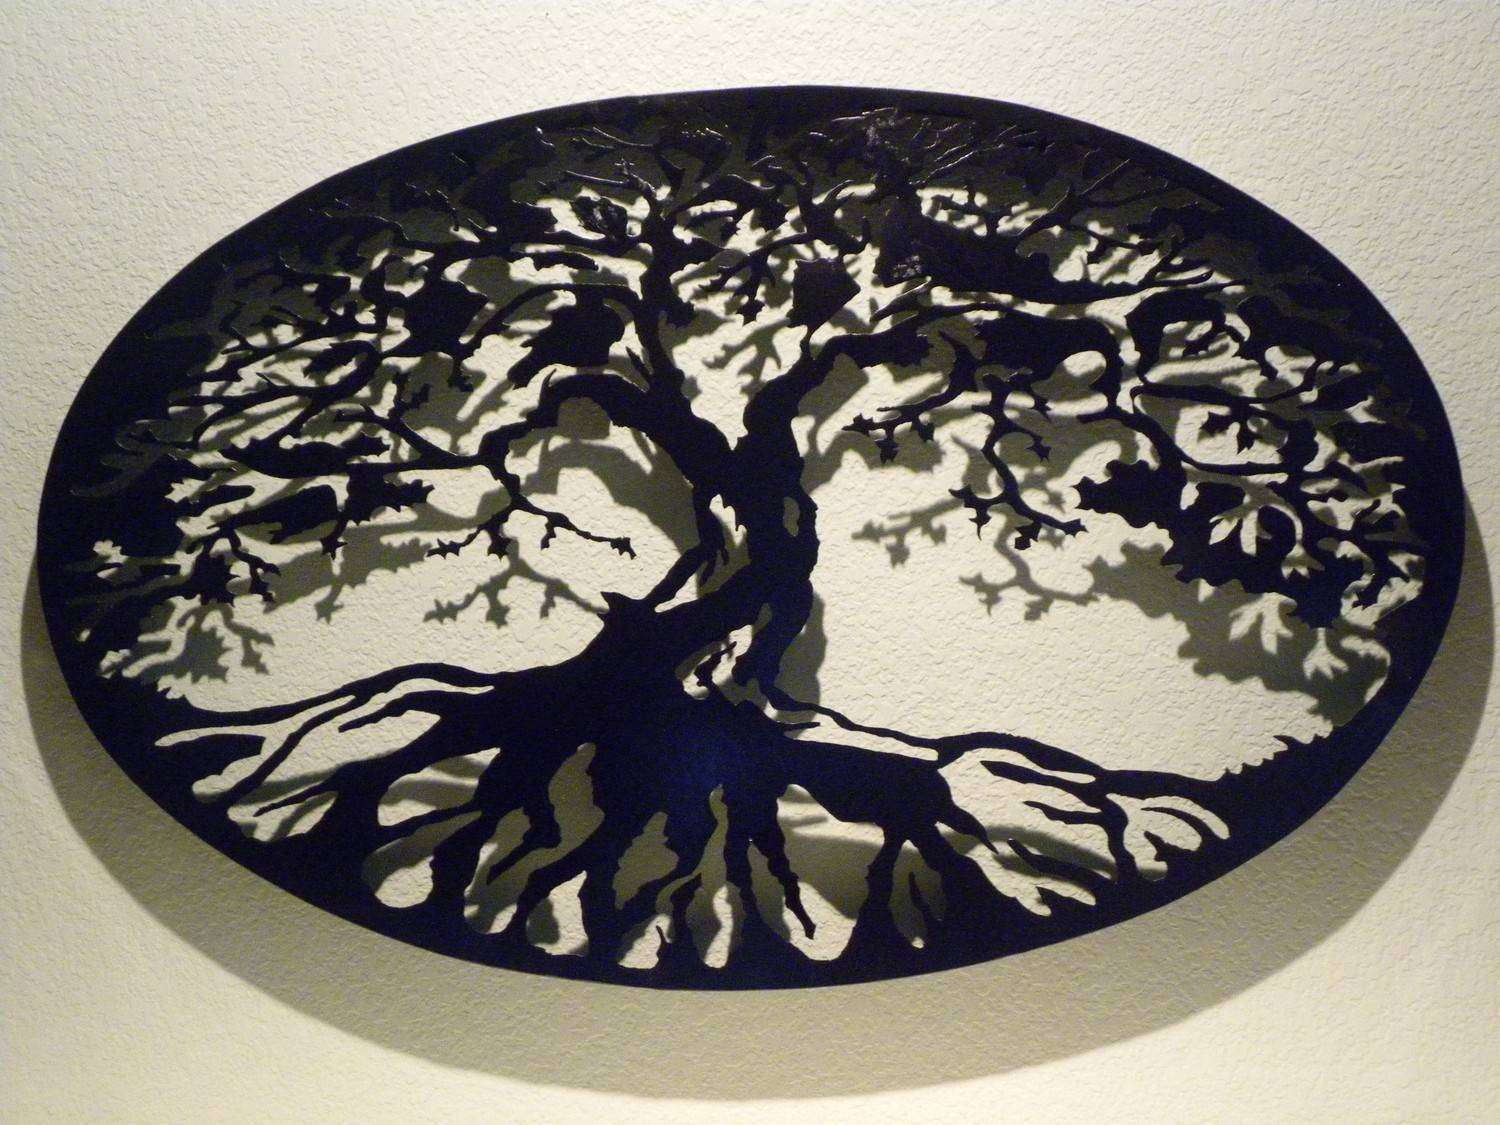 Wall Art Design Ideas: Dimension Tree Of Life Metal Wall Art Black With Regard To Most Recent Large Tree Of Life Metal Wall Art (View 17 of 20)